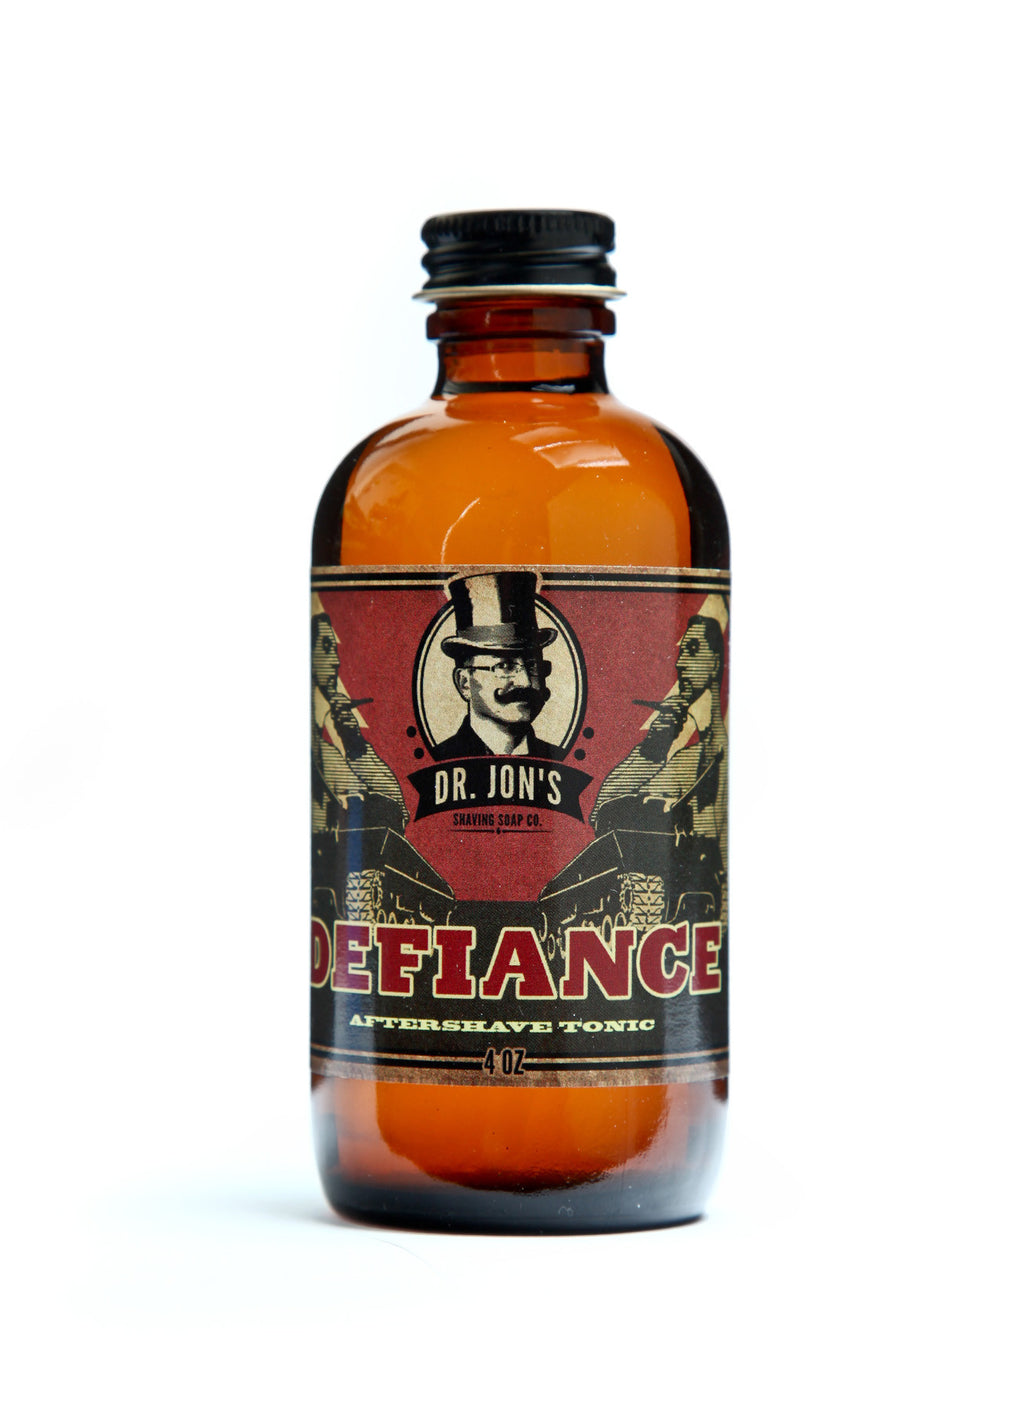 Dr. Jon's Defiance After Shave Tonic